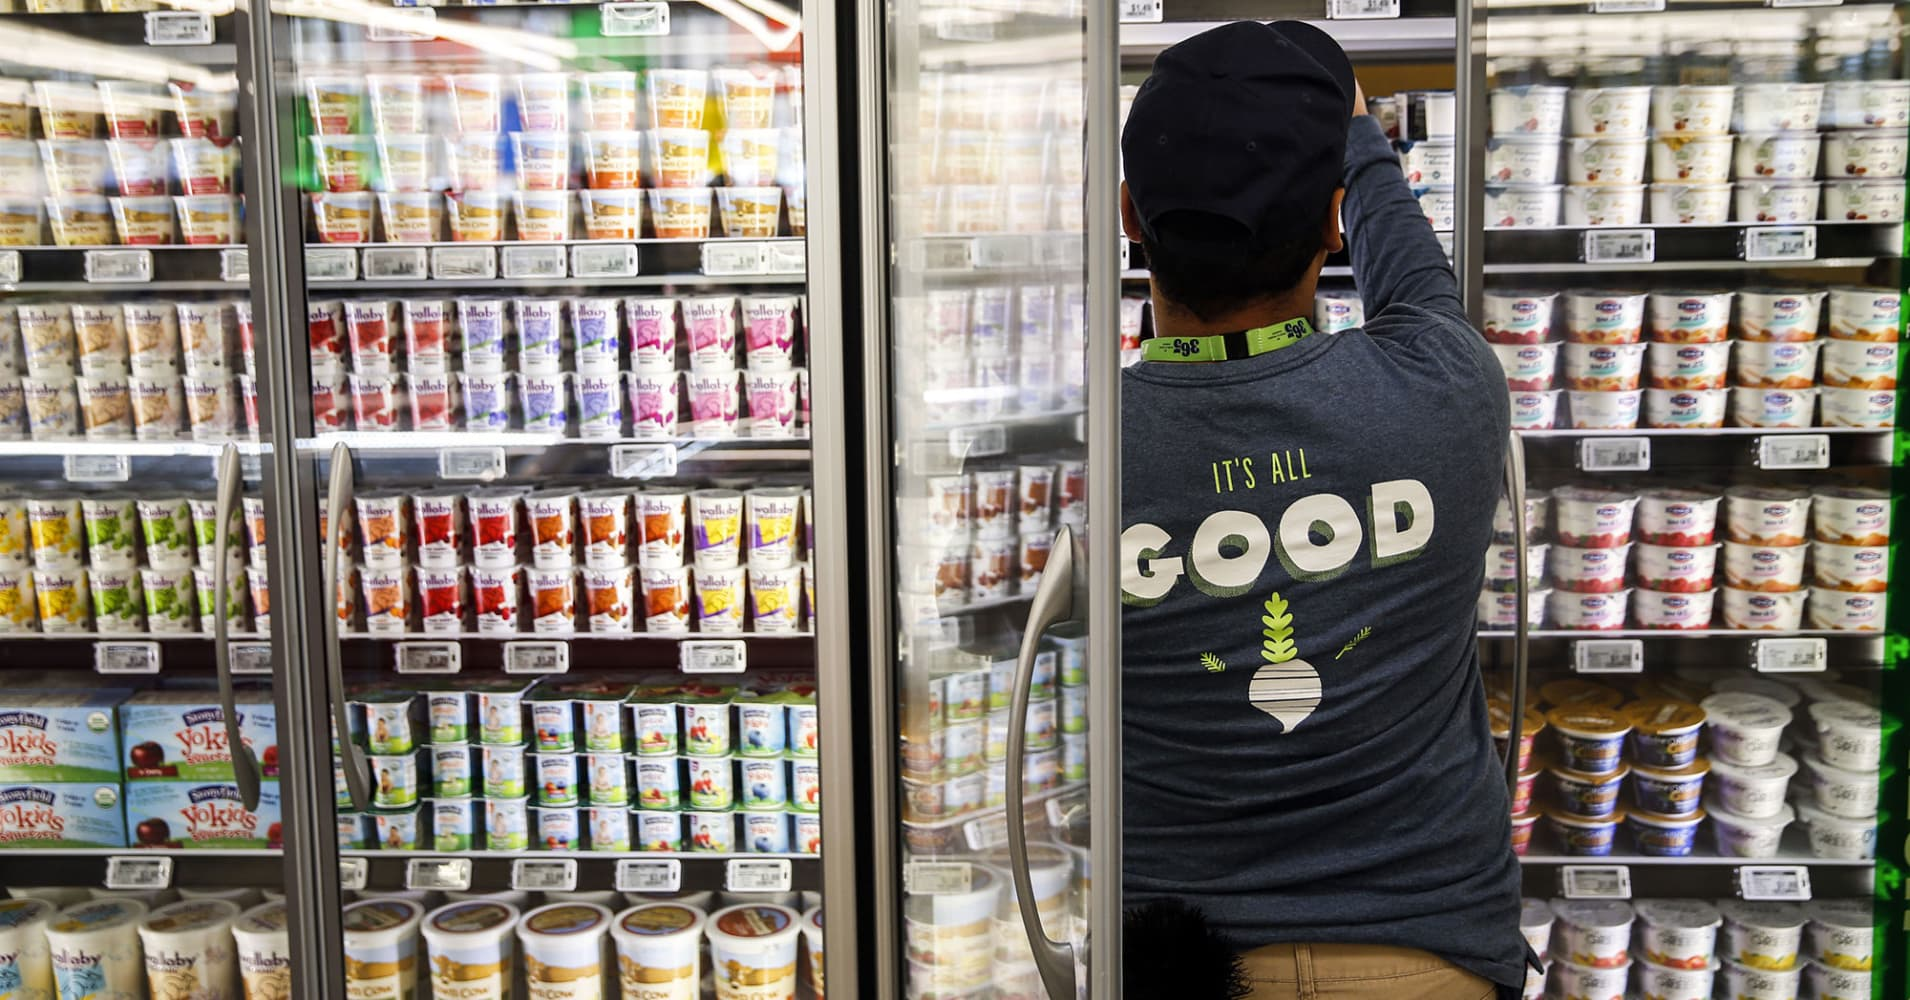 Another yogurt company has put itself up for sale, amid a spate of M&A